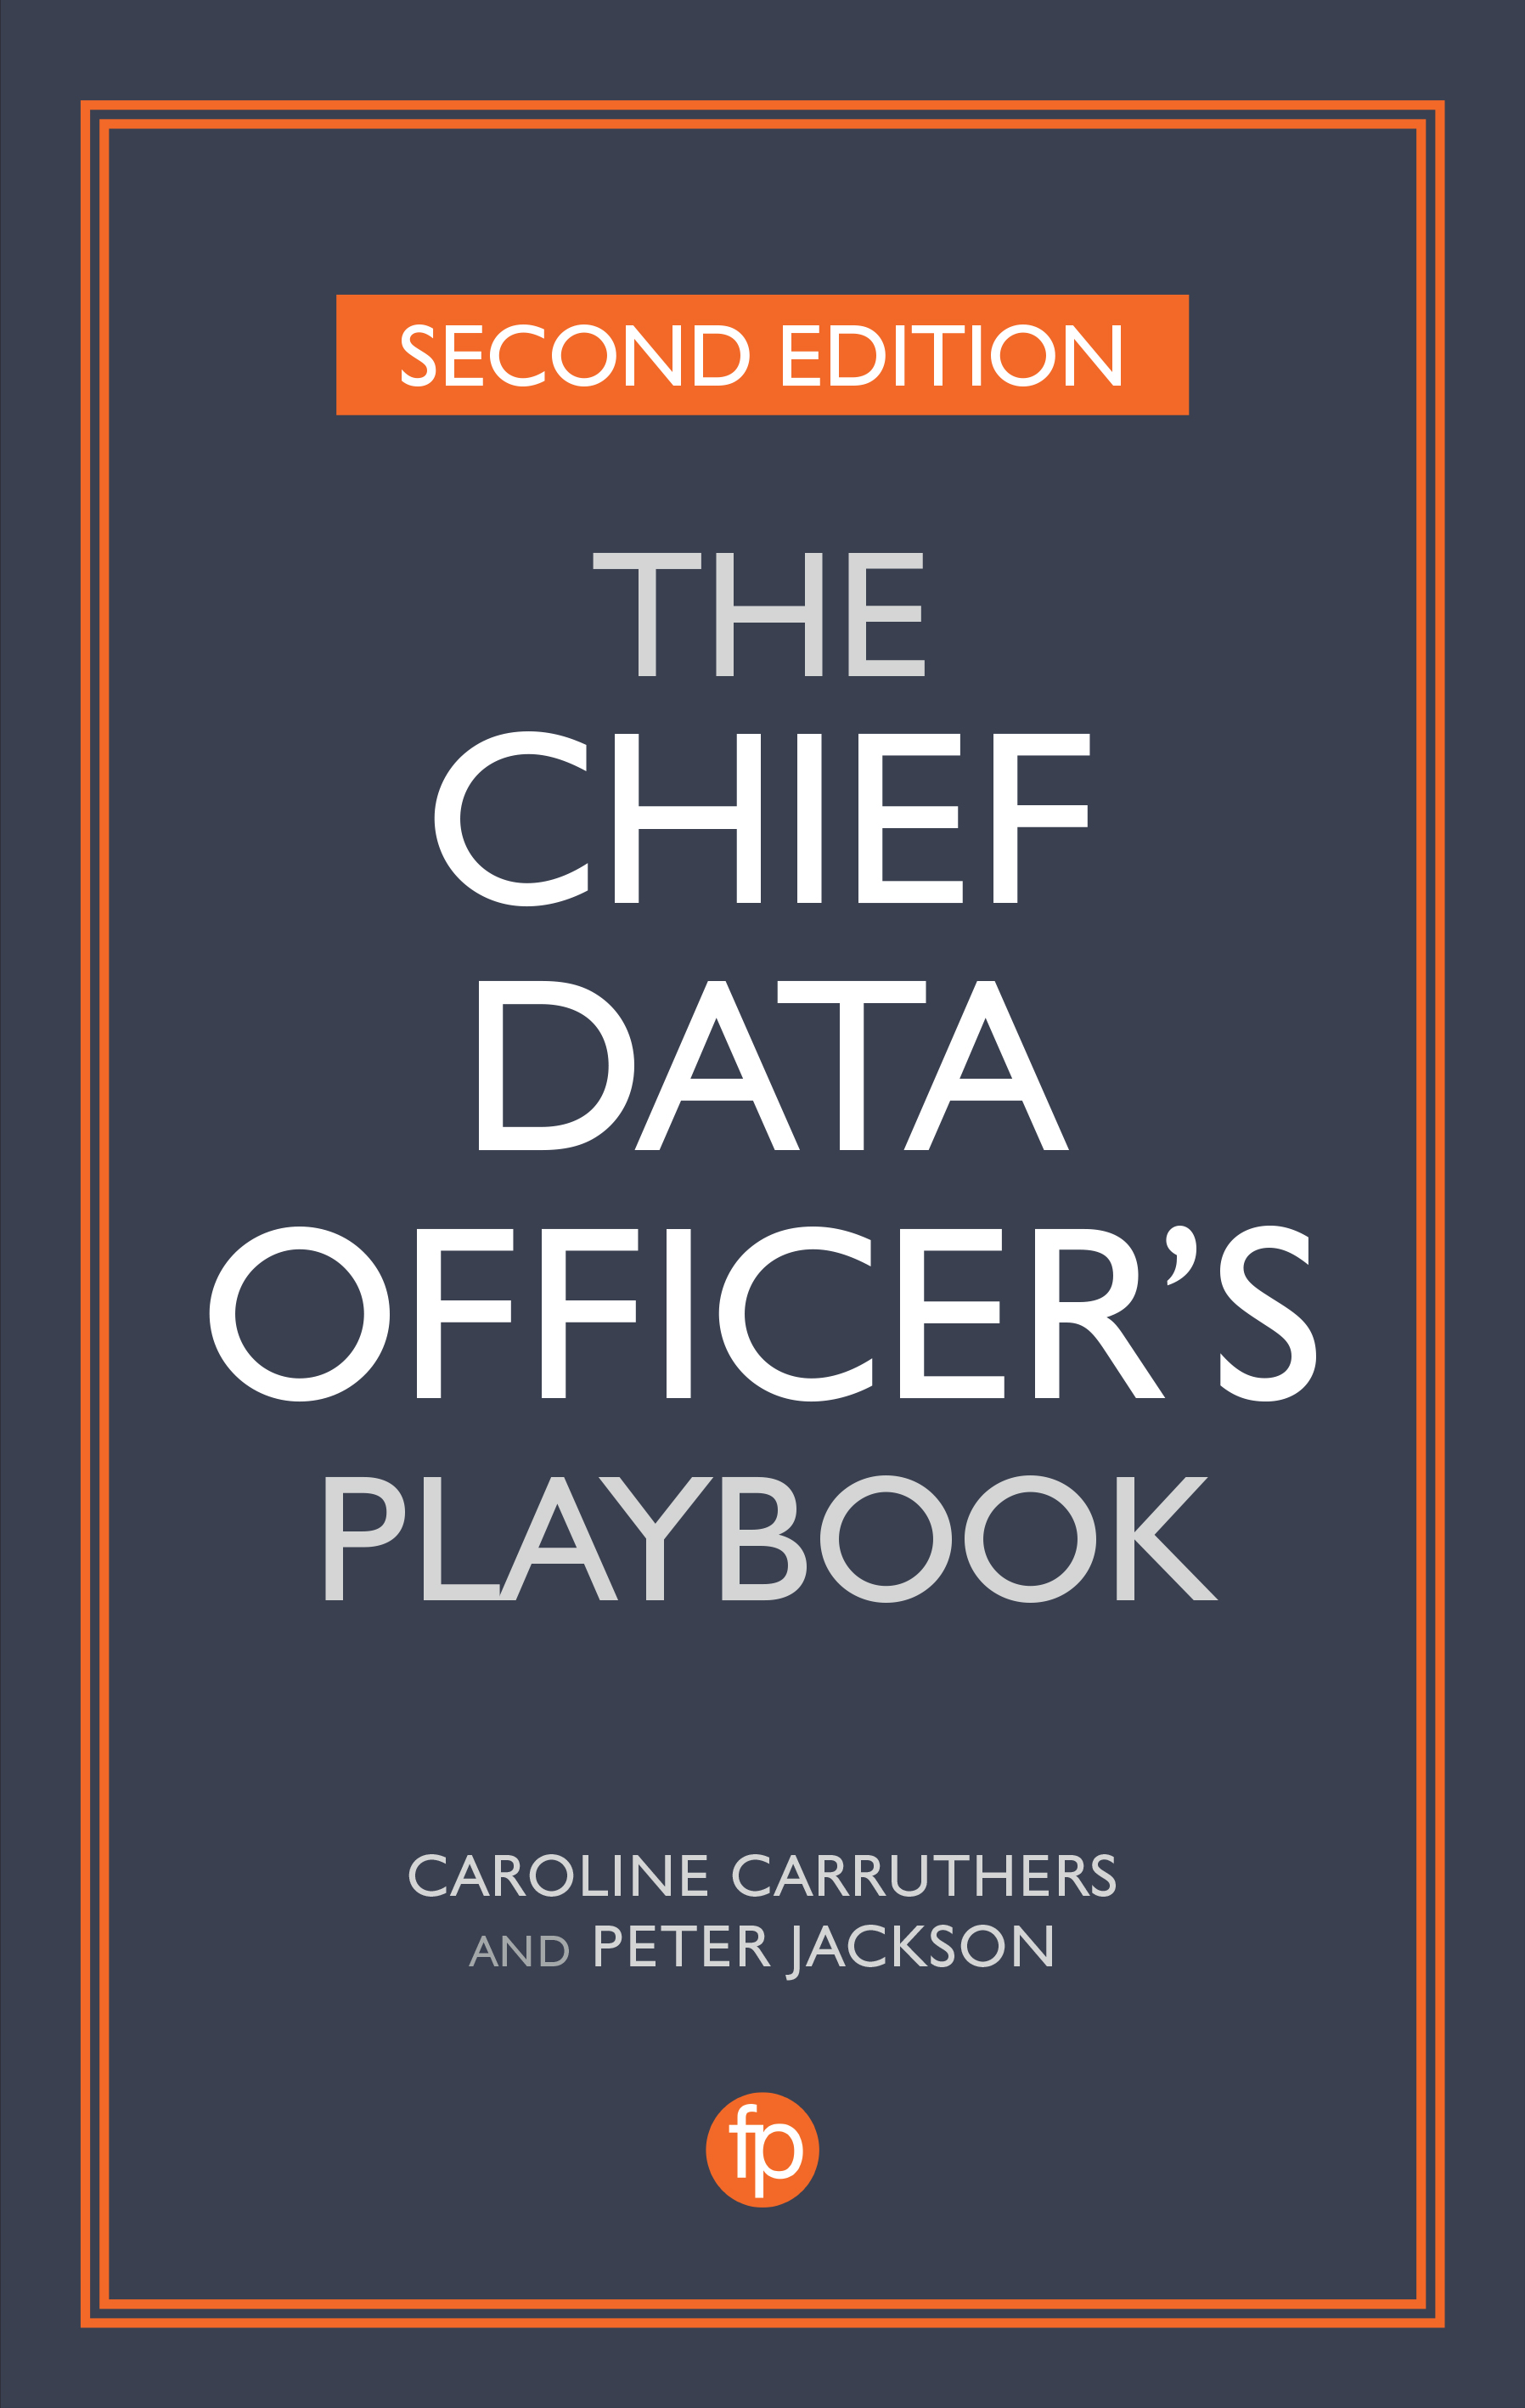 Image for The Chief Data Officer's Playbook, Second Edition